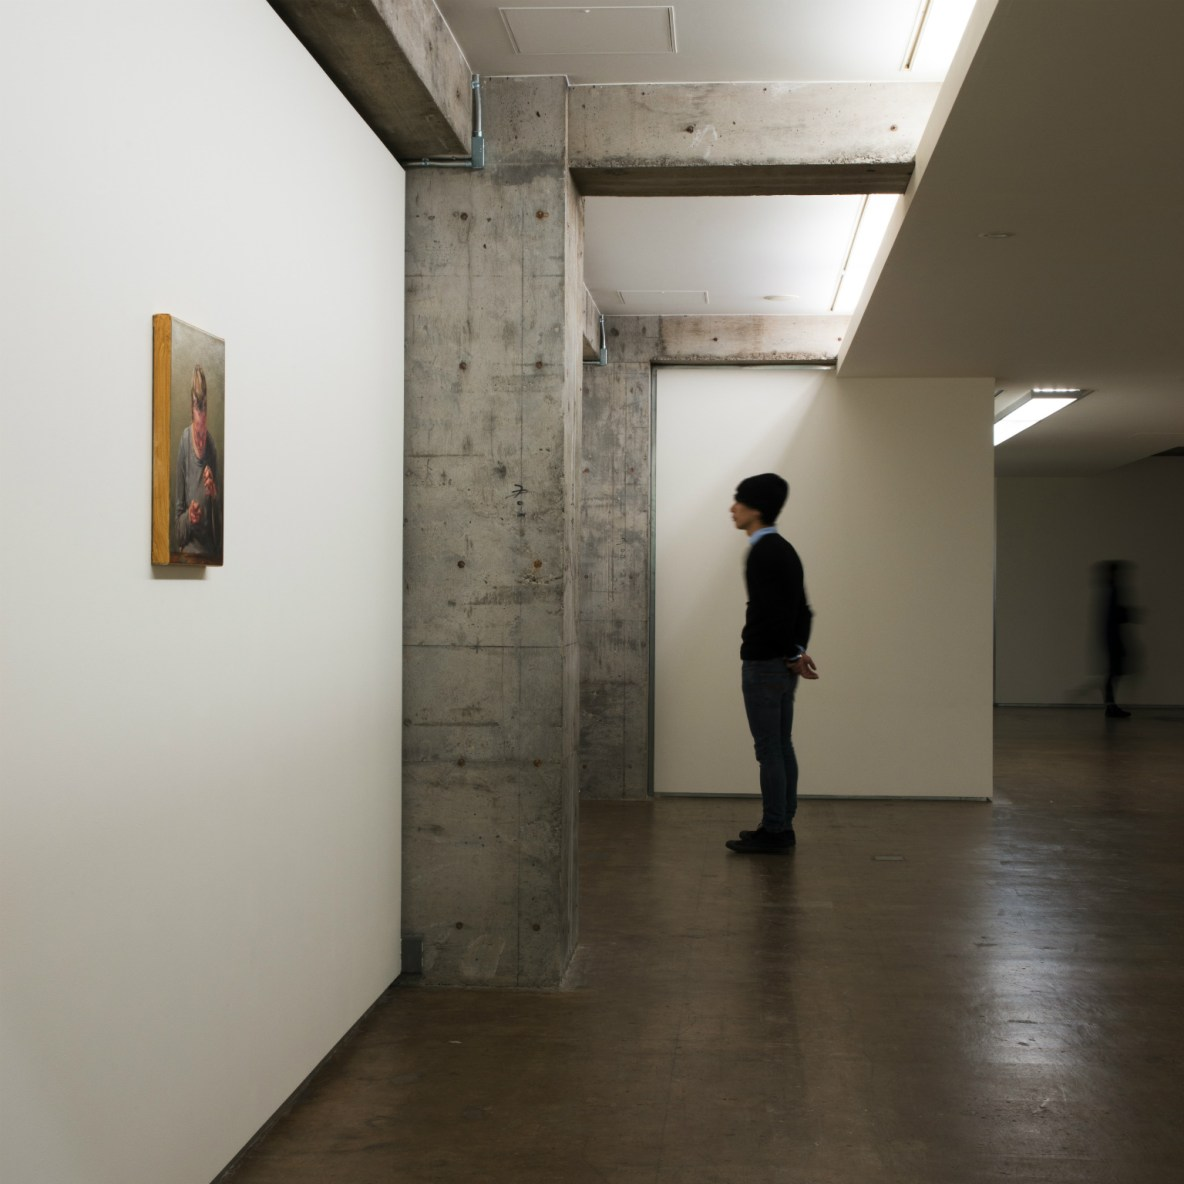 Deceptively unassuming space driven by artistic passions